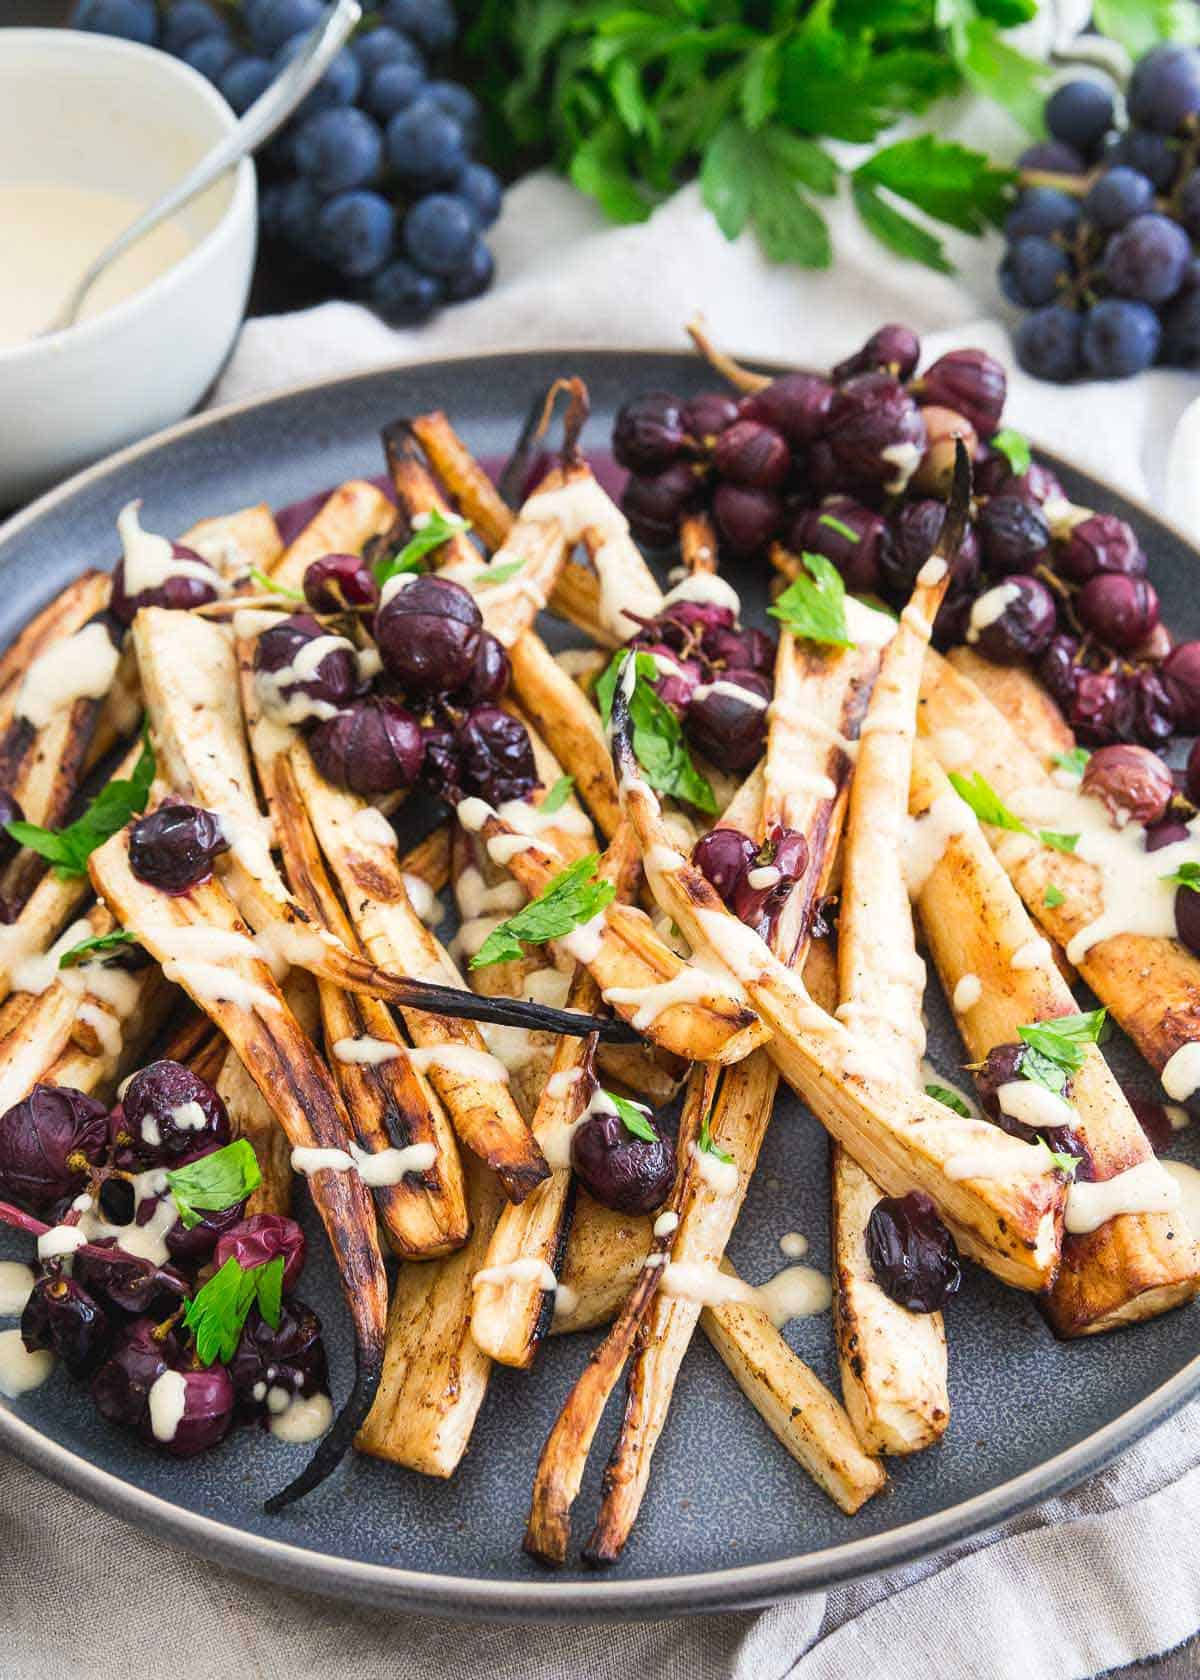 Roasted parsnips and concord grapes with cinnamon, brown sugar and a sweet hummus dressing.